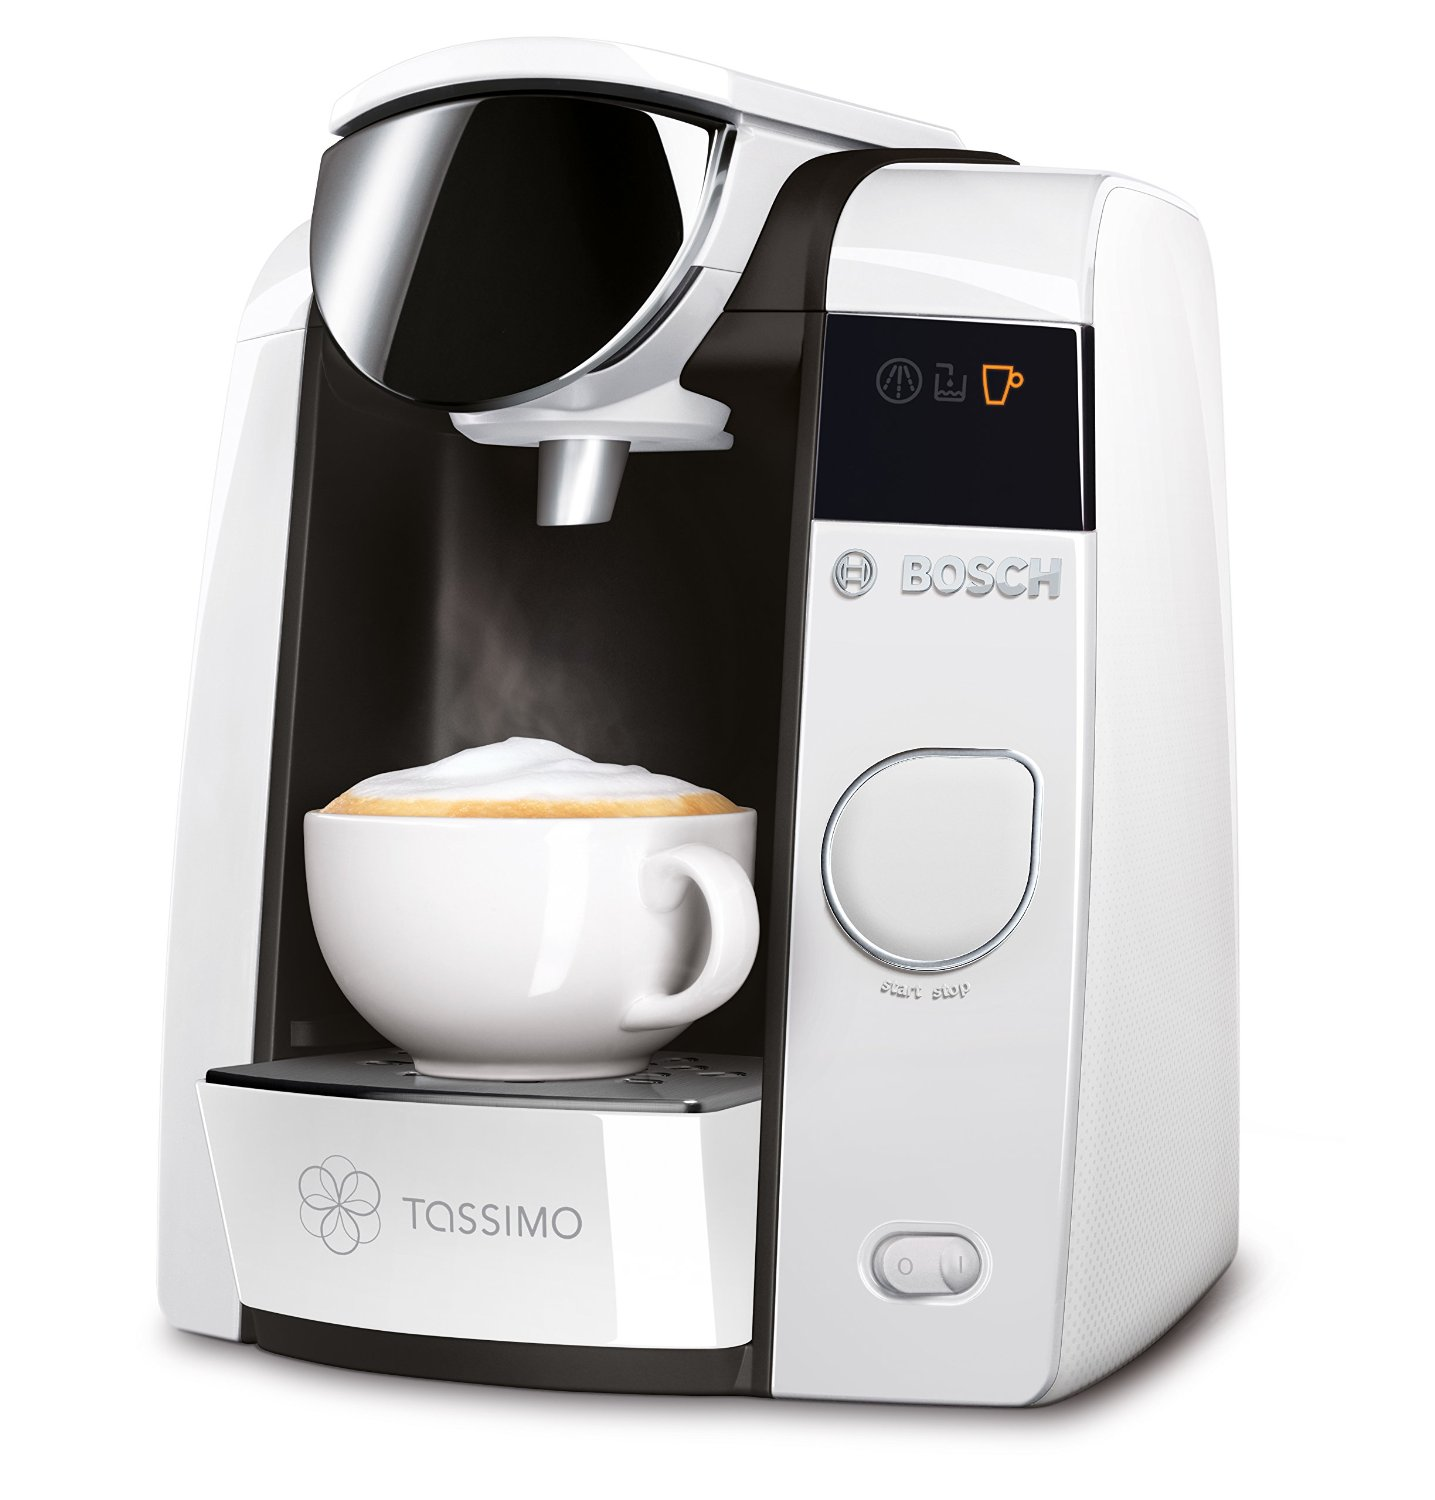 bosch tassimo joy 2 t45 multi drinks pod machine tas4504gb white around the clock offers. Black Bedroom Furniture Sets. Home Design Ideas